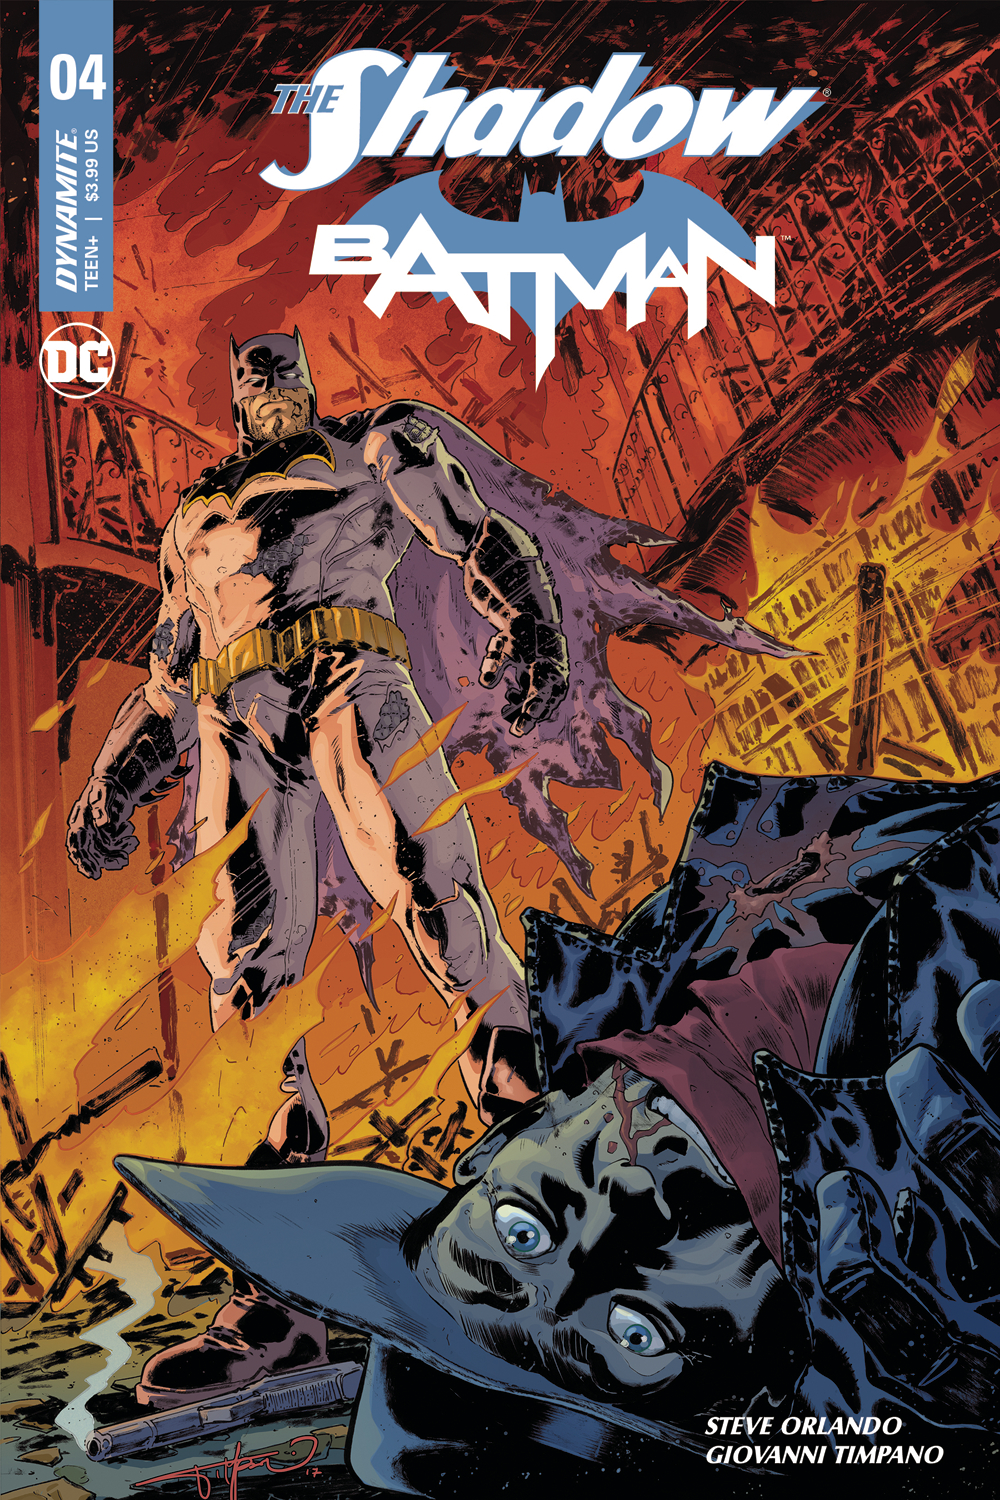 SHADOW BATMAN #4